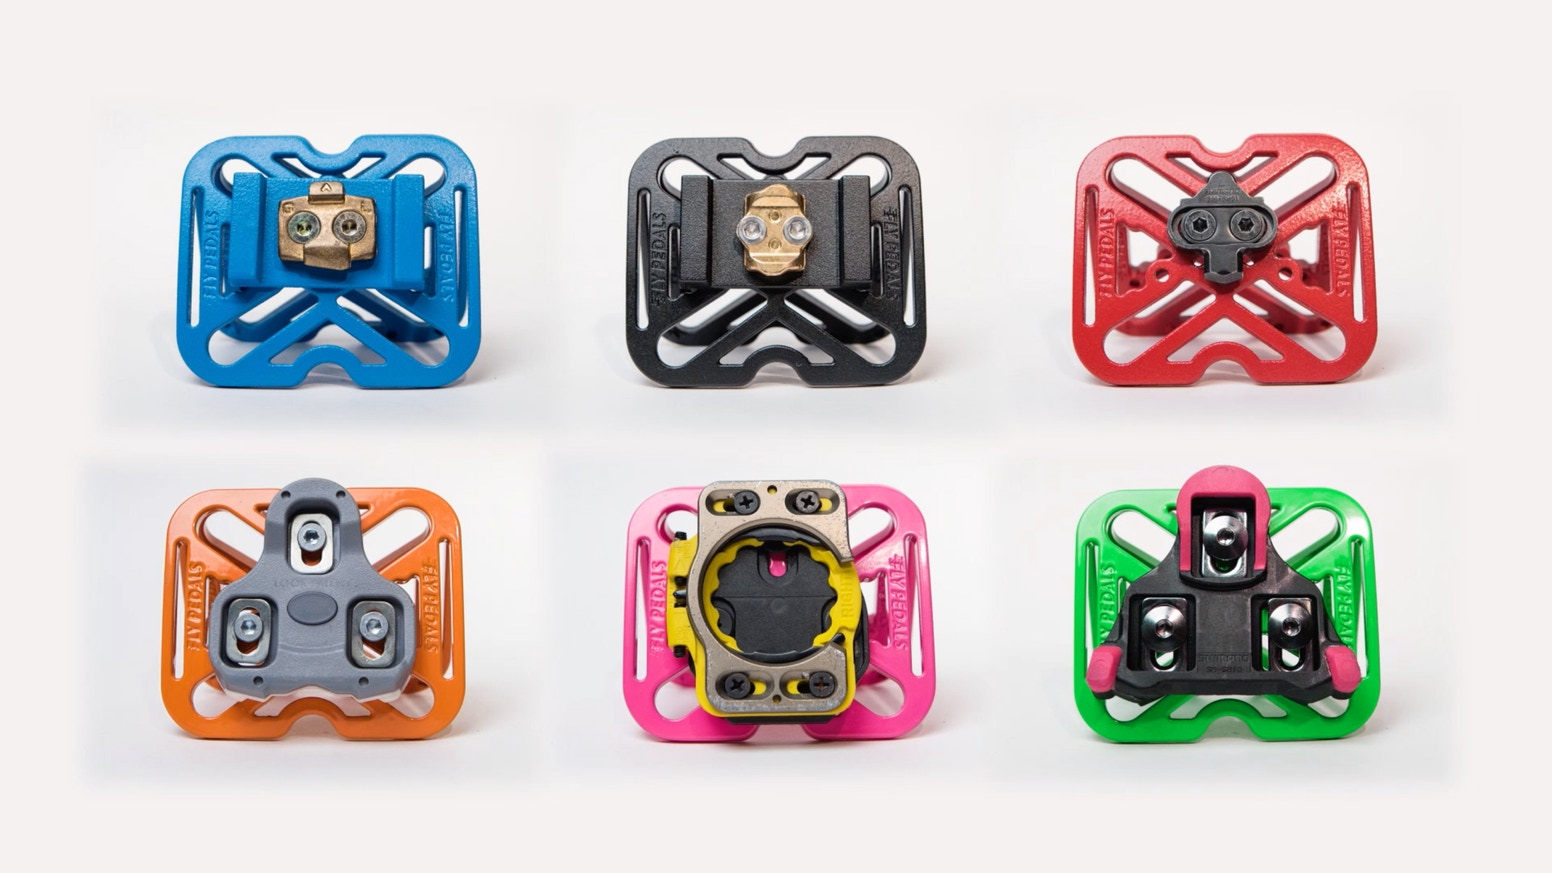 Instantly convert clipless pedals to platform pedals for casual bike riding. Now in six awesome new colors!